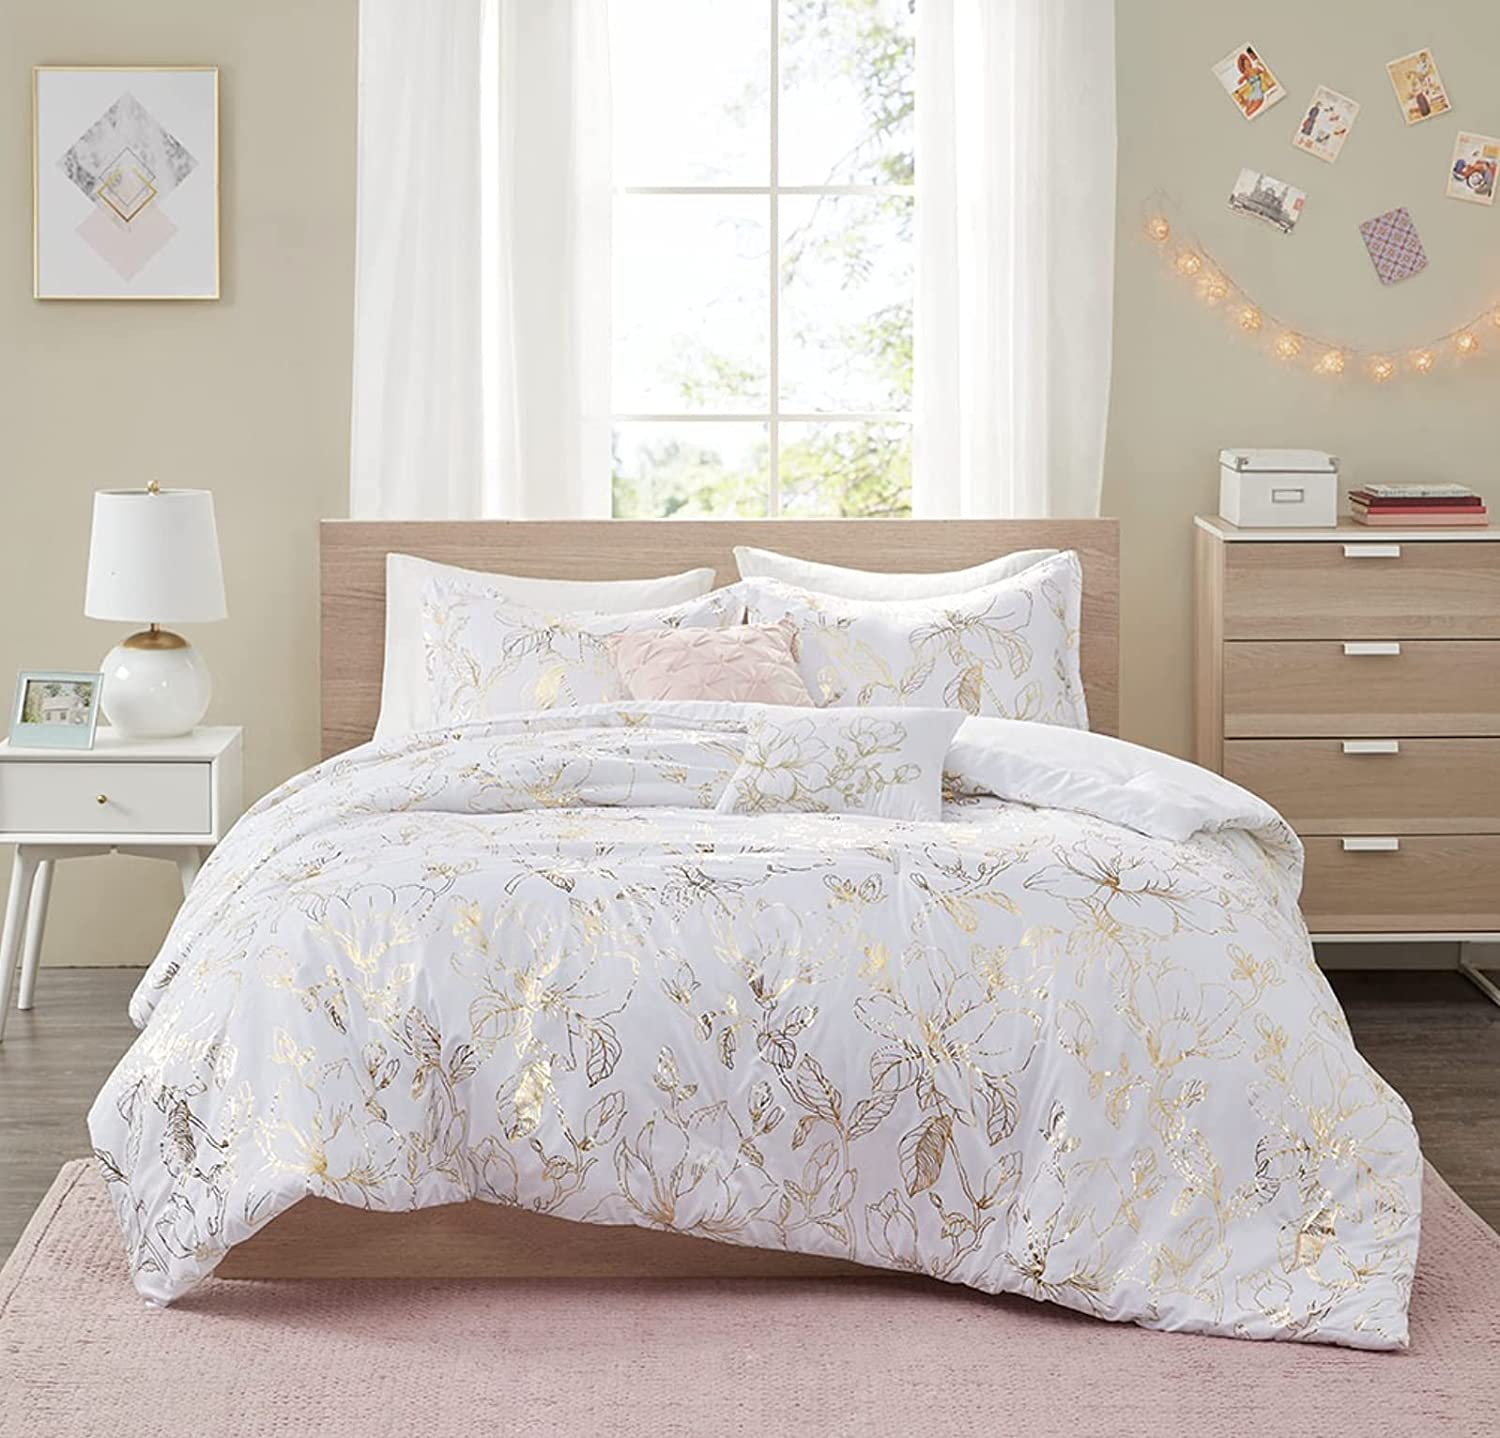 Metallic Printed Floral Full Import Queen Piece Set Comforter 70% OFF Outlet 5 +